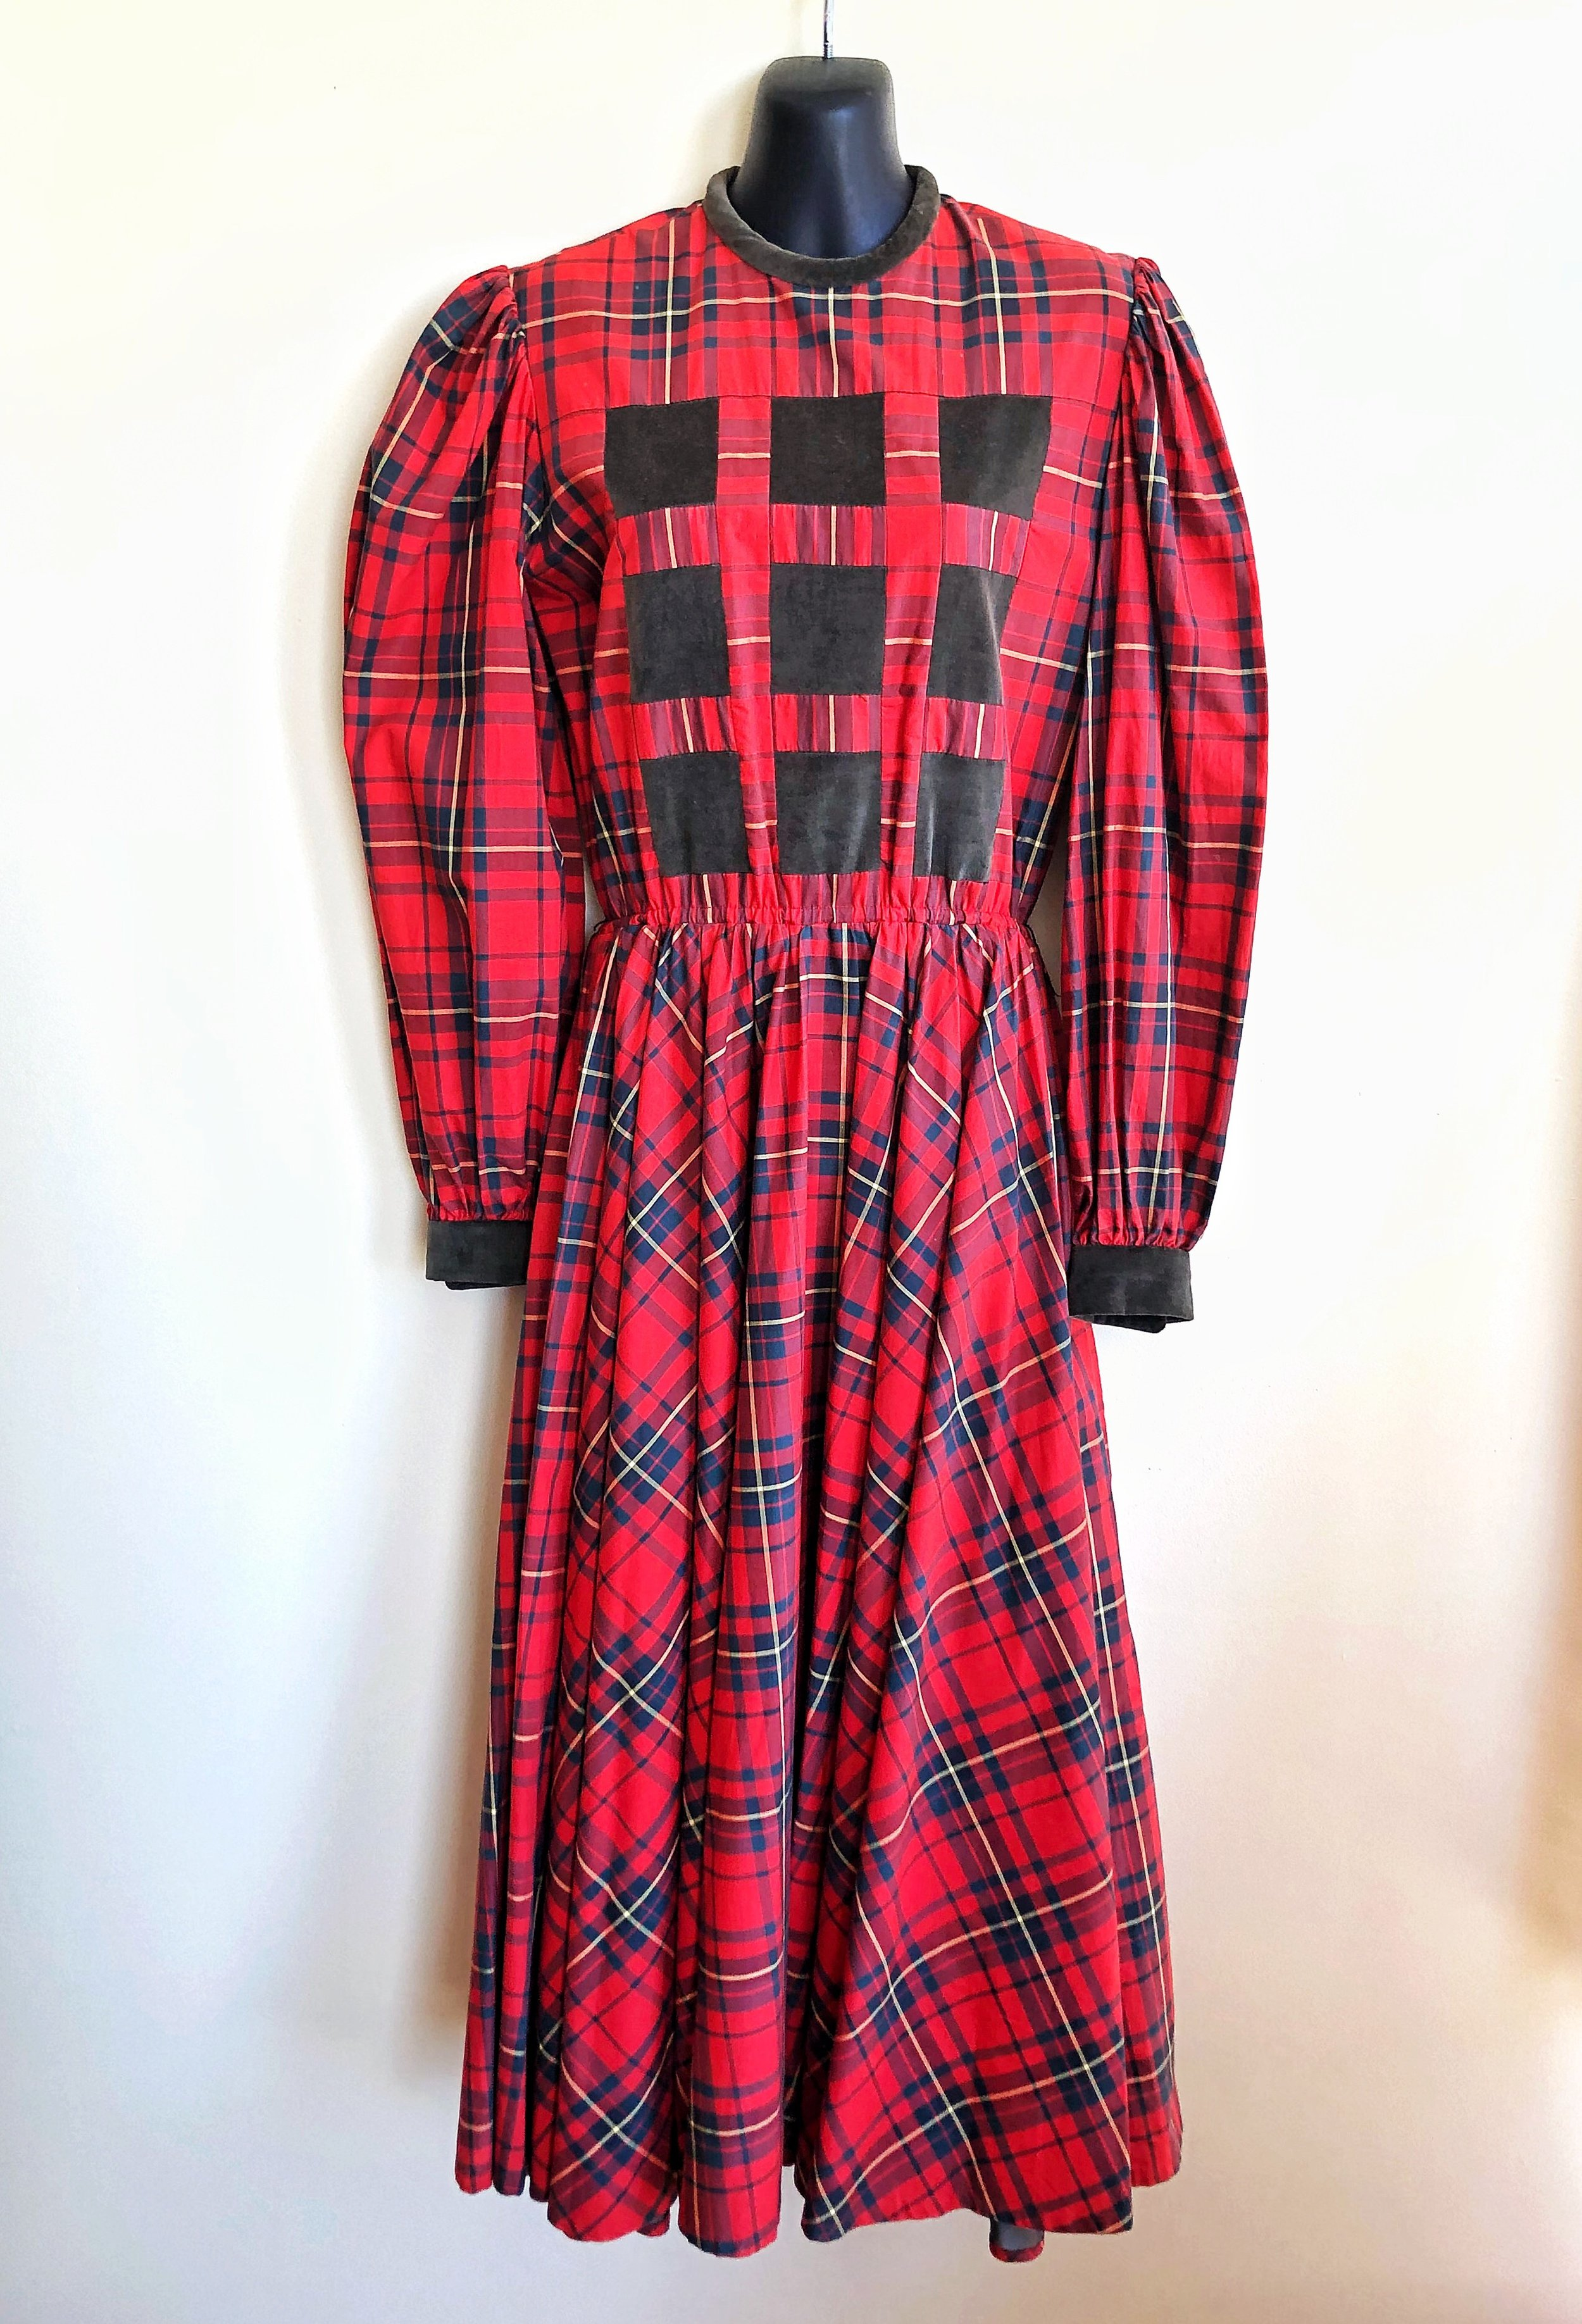 This adorable 100% cotton Suttles & Seawinds plaid peasant dress is incredibly well made and looks so great on. Made in Nova Scotia in the 1970s-80s by Vicki Lynn Bardon: it's a piece of Canadian fashion history! It's comfy and stylish at the same time, so you have it all!